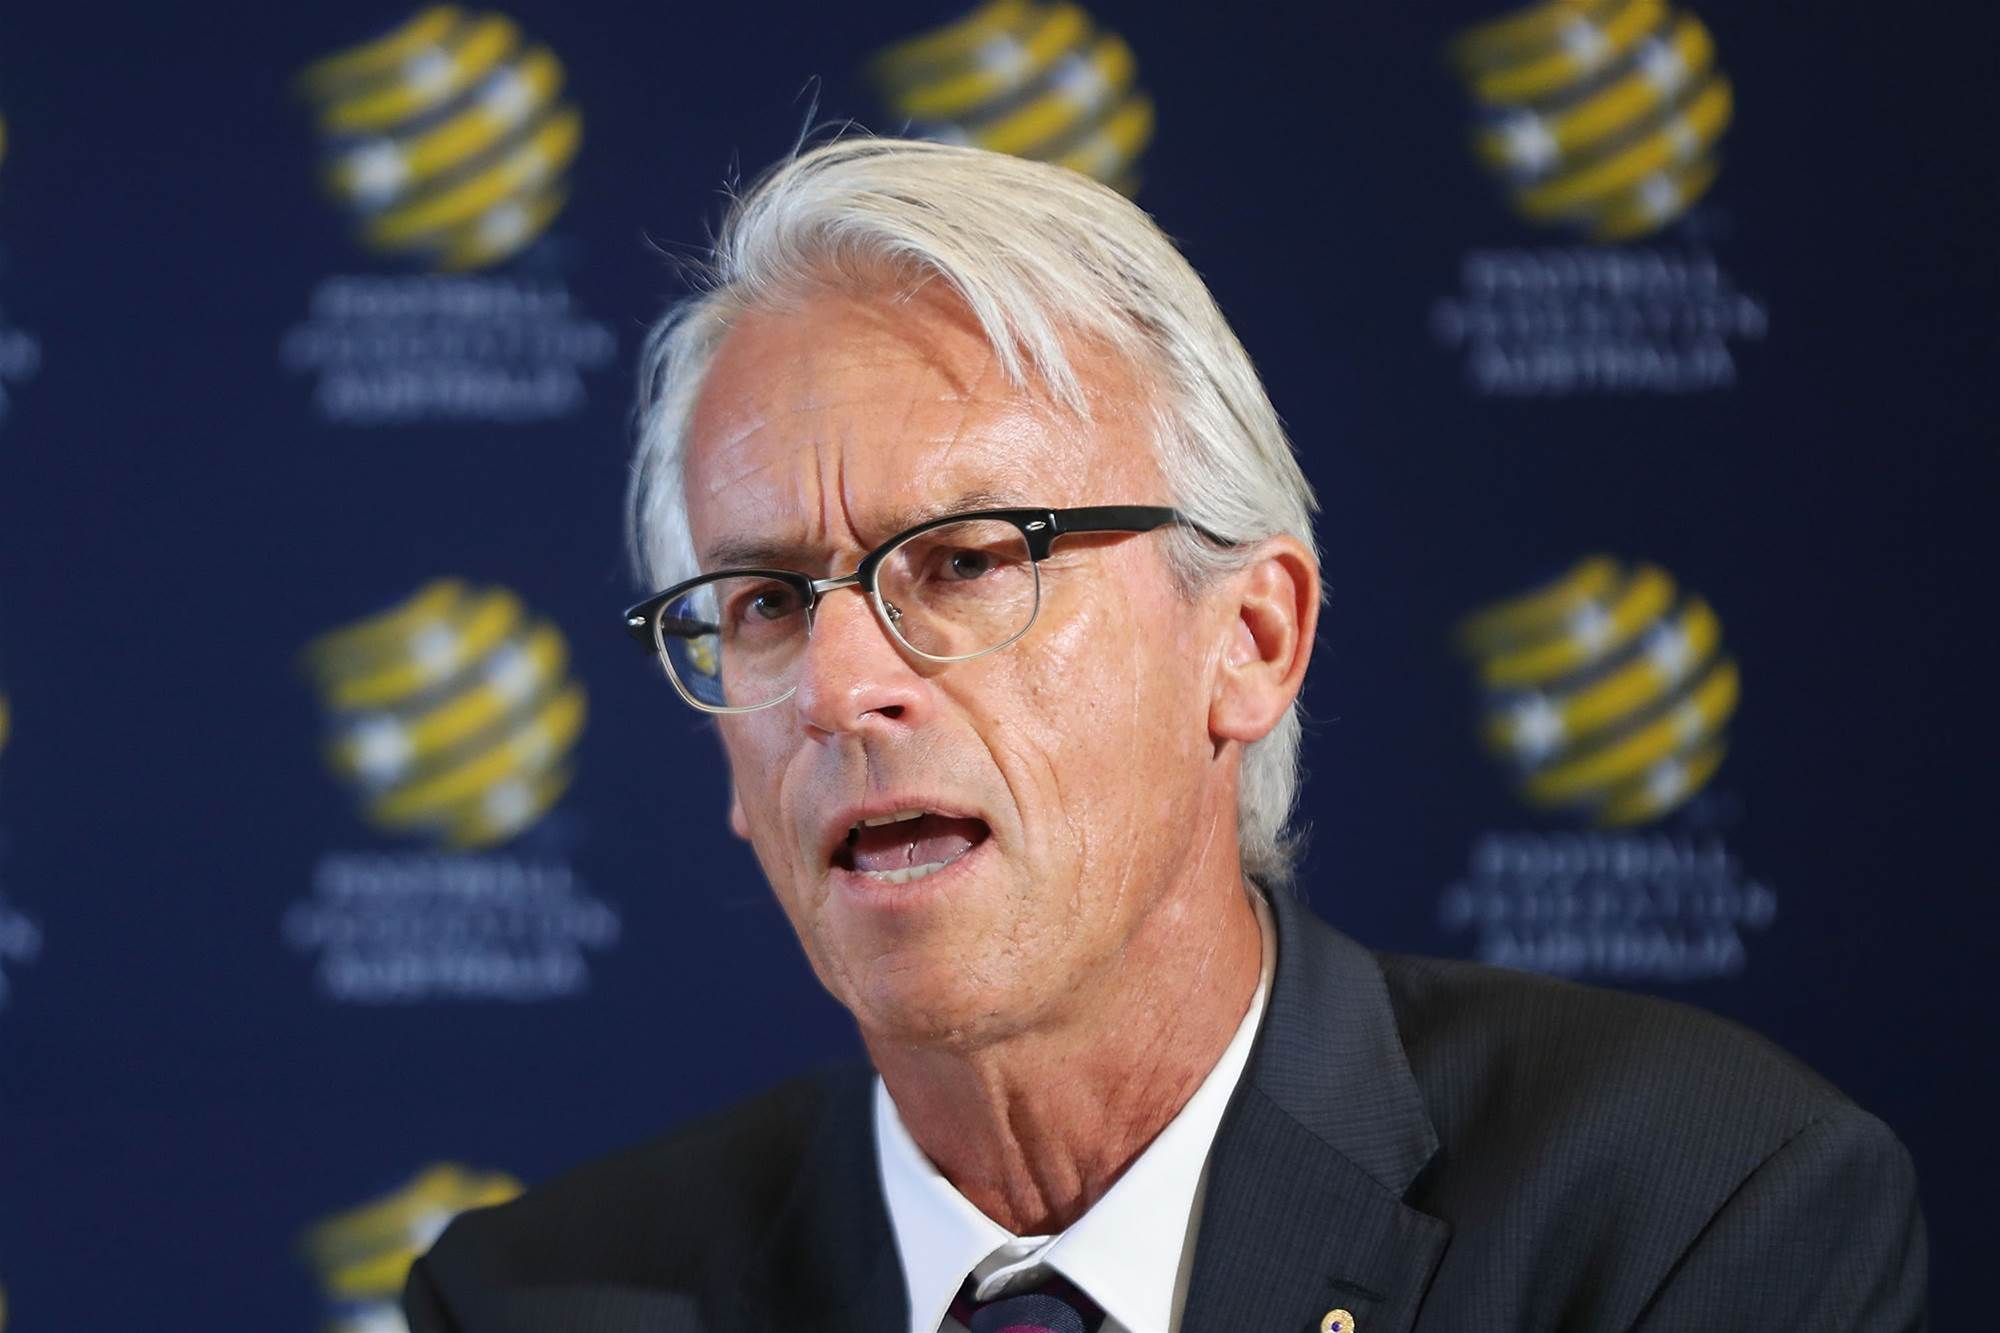 FFA announces major Senior Management changes